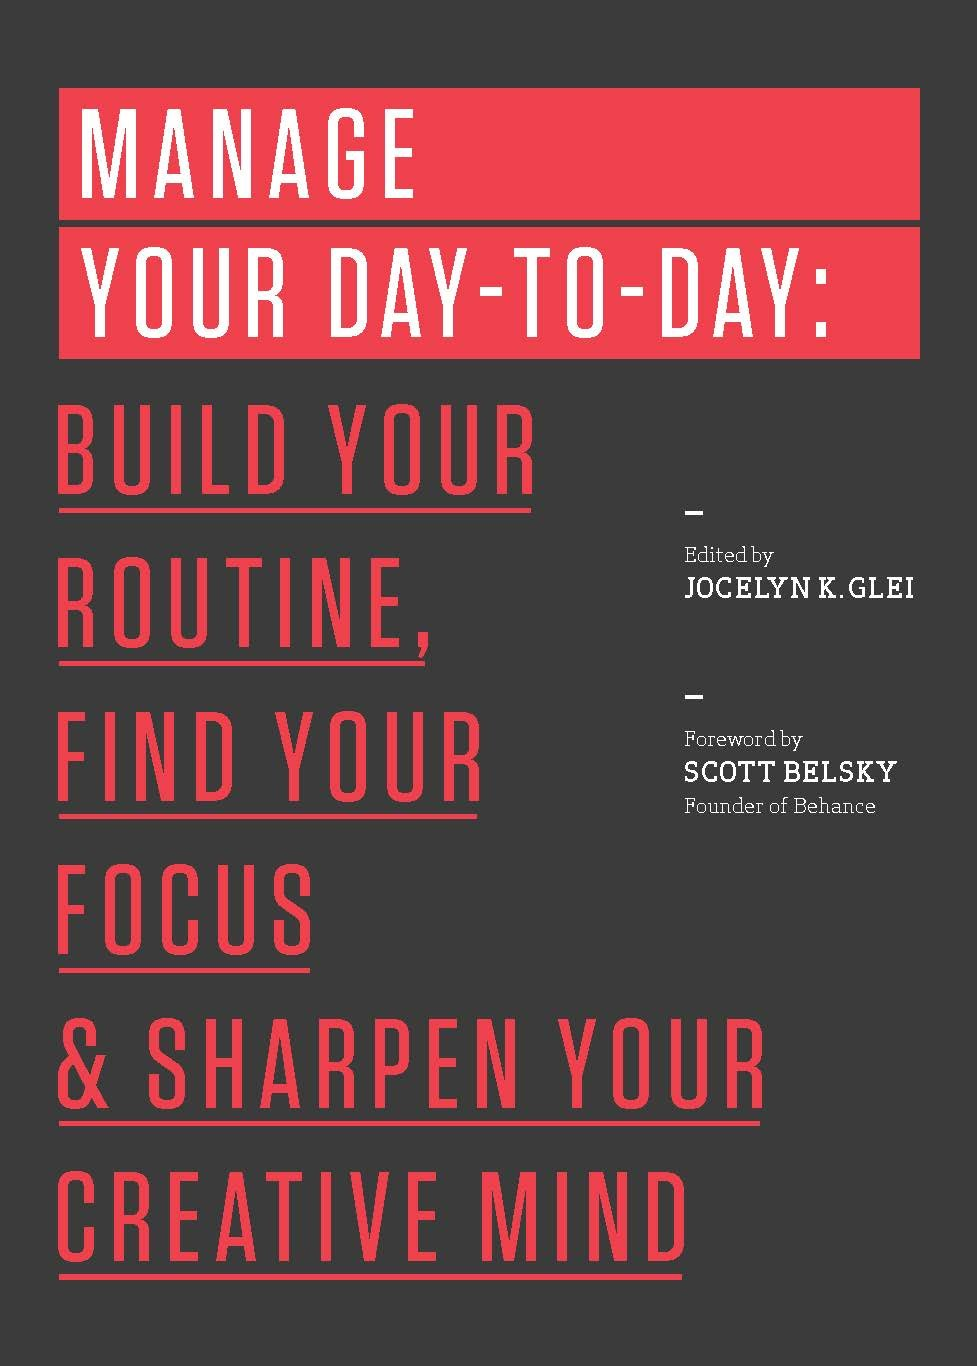 Manage YourDay-To-Day - By Jocelyn K. Glei